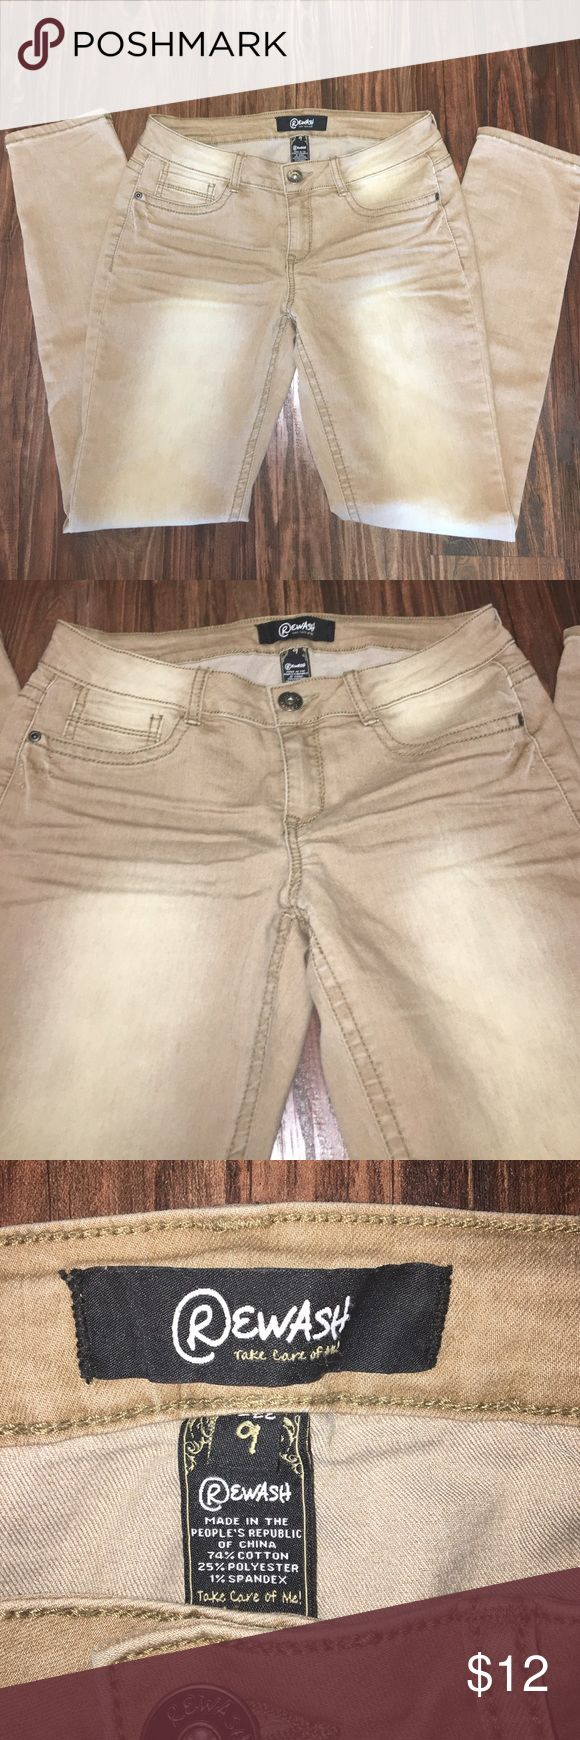 Tan skinny jeans Rewash tan skinny stretch jeans. Super comfortable and the perfect color to go with anything! In great used condition. Rewash Pants Skinny